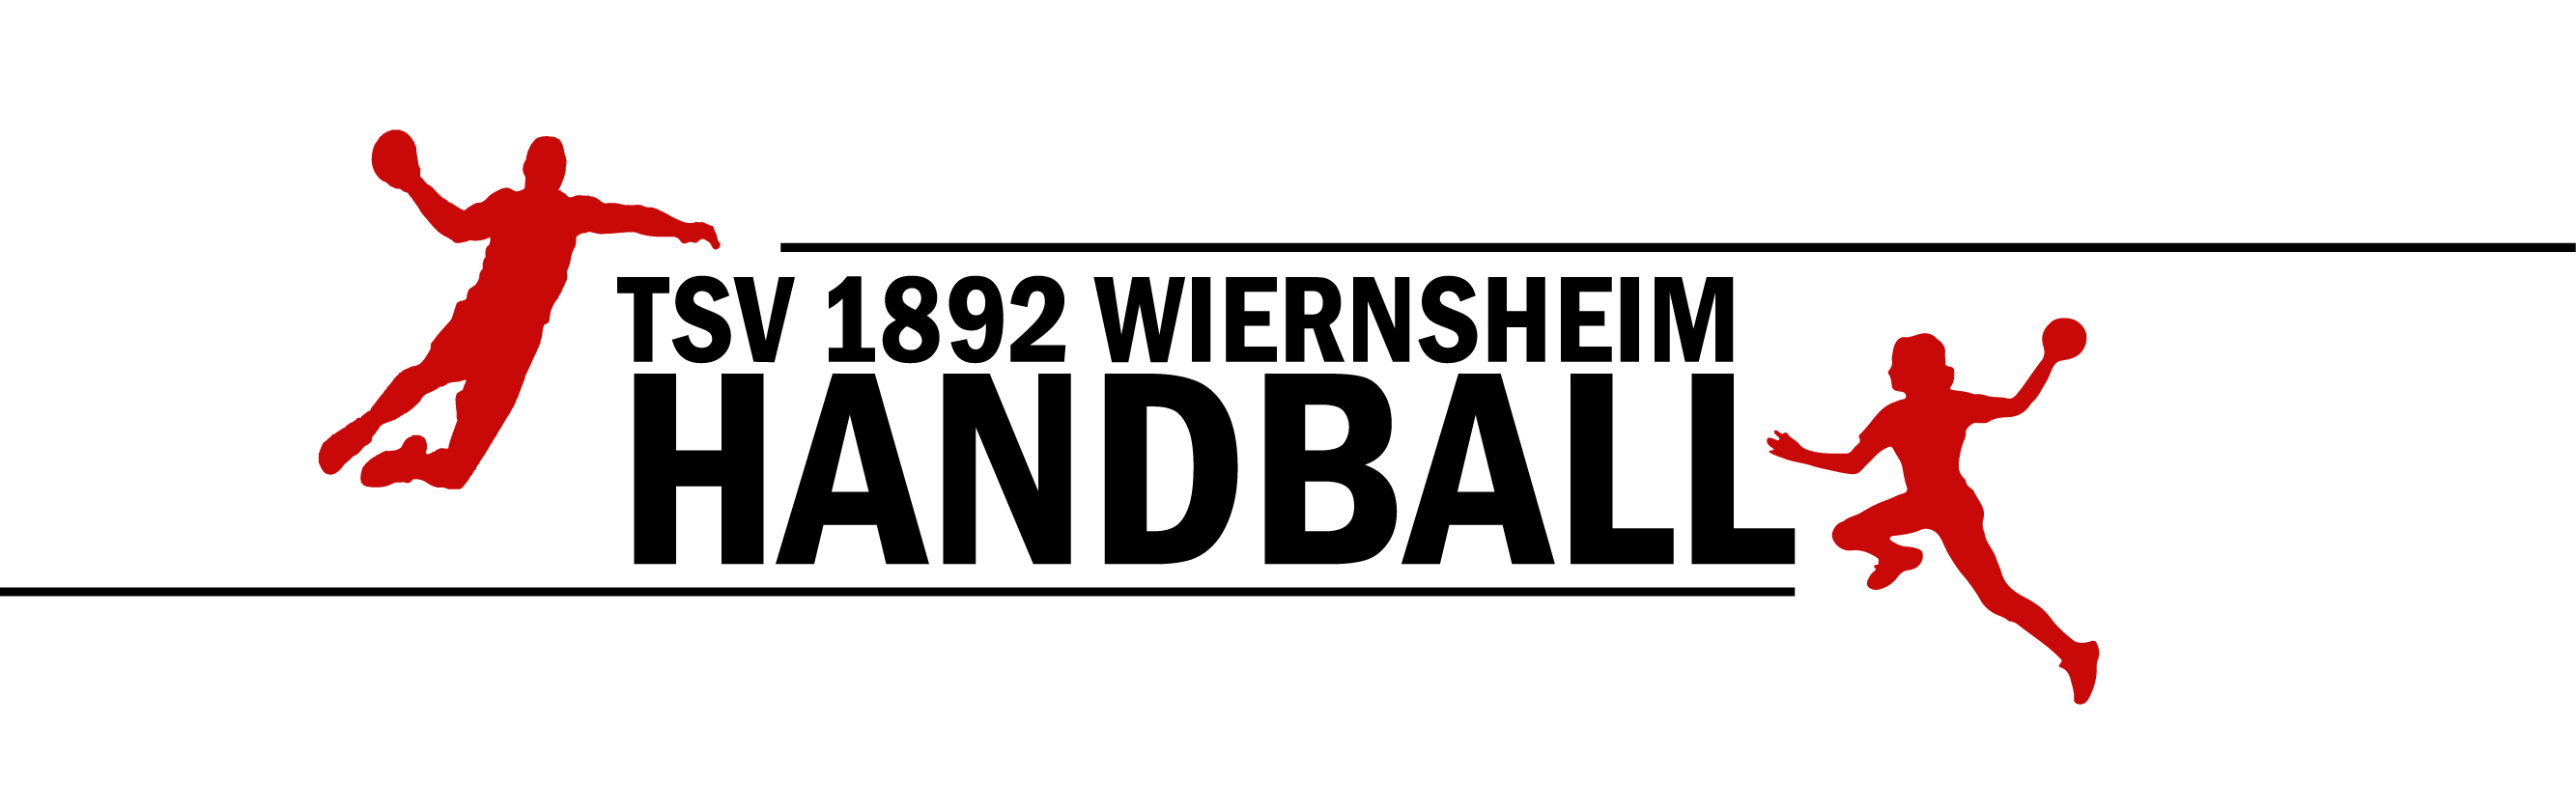 Handball Header neu Website 2019